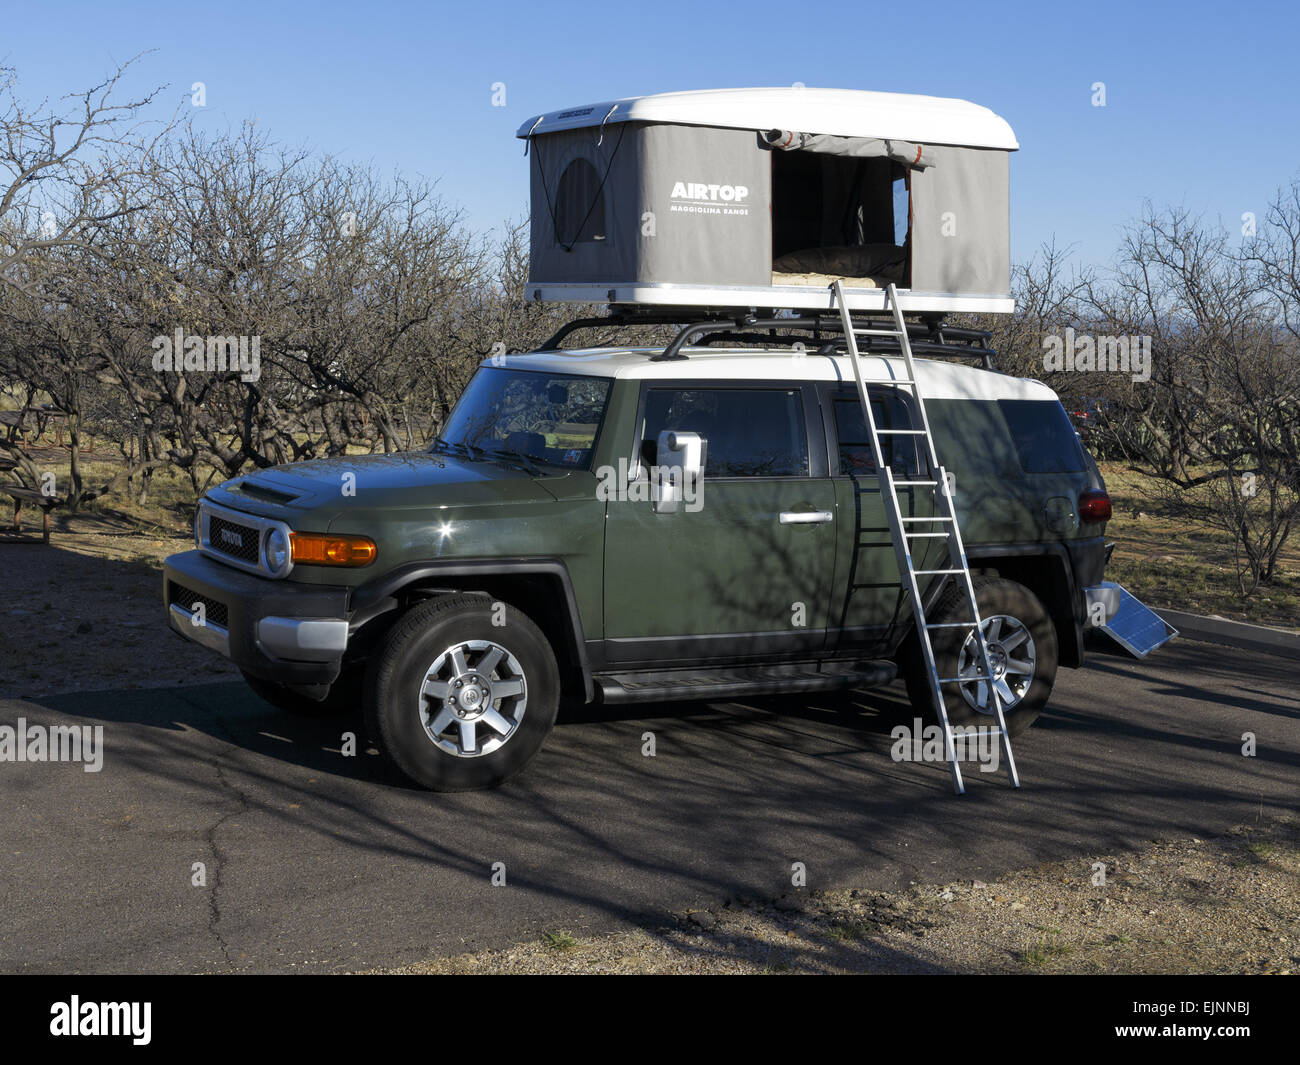 Airtop Maggiolina Roof Tent On Top Of A Toyota Fj Cruiser